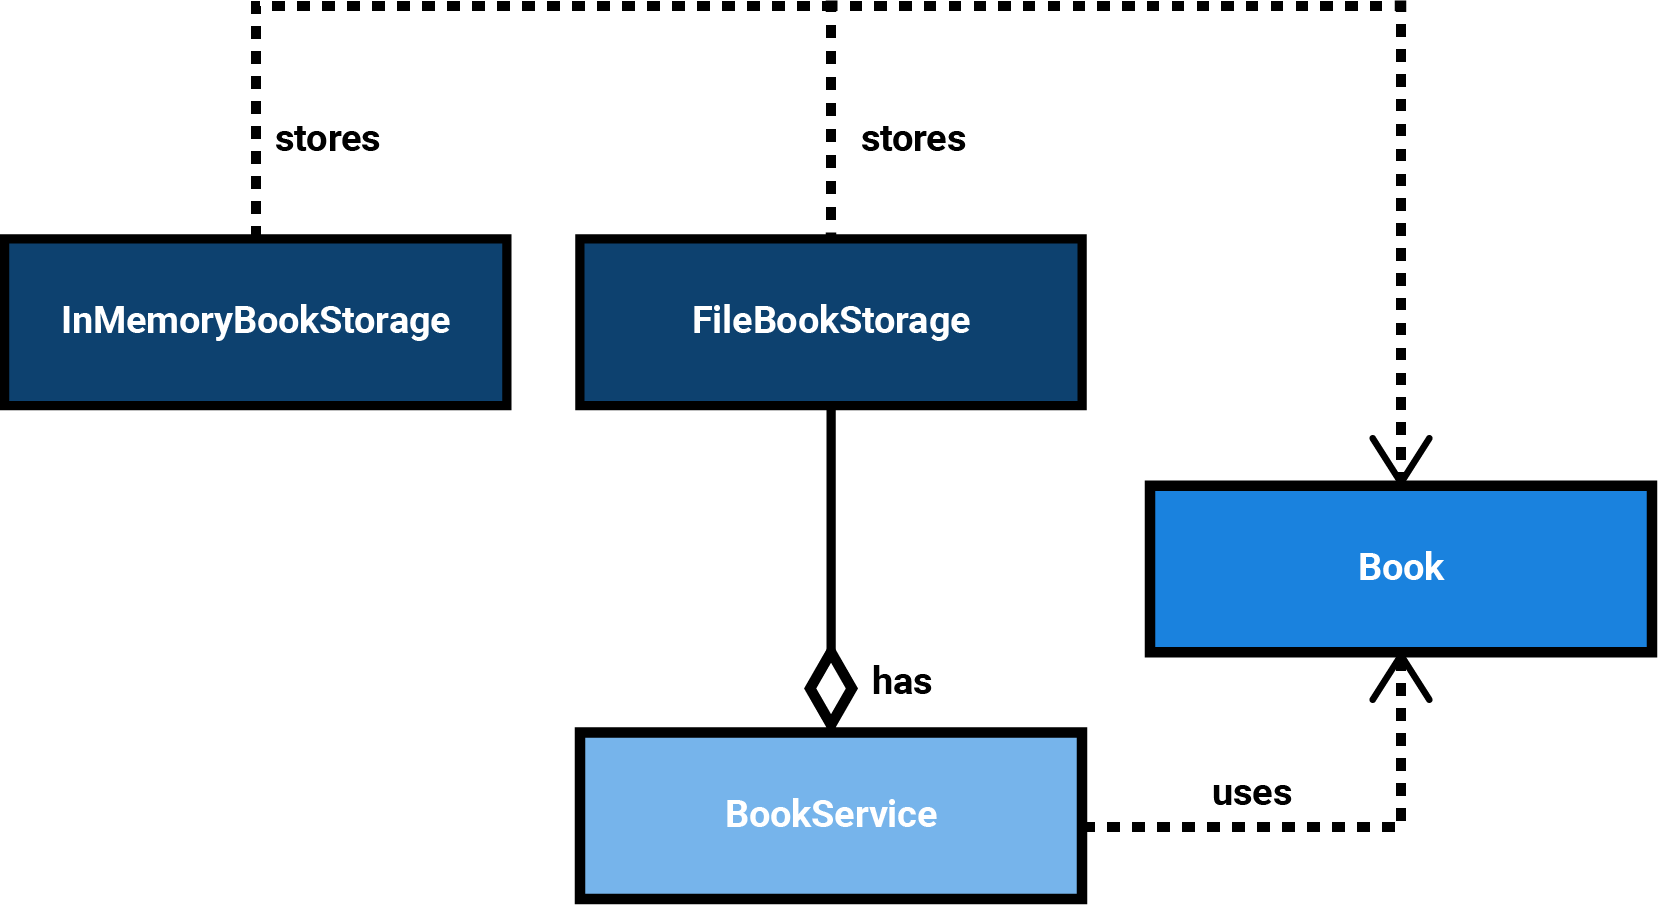 UML: The BookService directly uses a FileBookStorage. The InMemoryStorage no longer used. Both implementations have the same implicitly required method signatures.